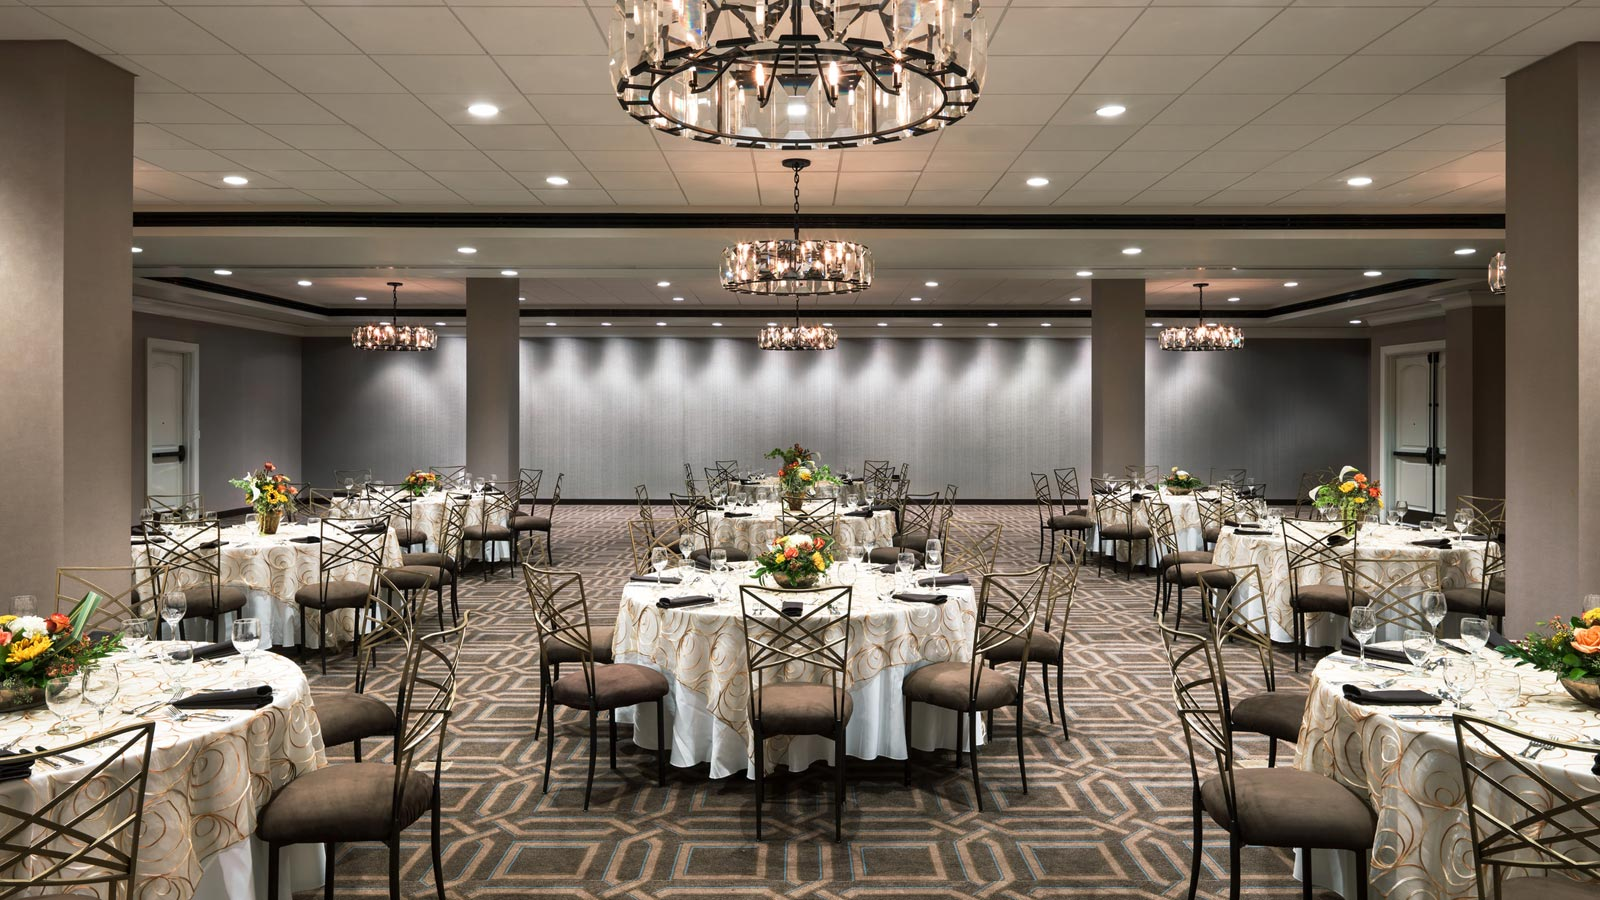 Wedding venues in memphis tn sheraton memphis downtown hotel magnolia ballroom sheraton memphis downtown hotel junglespirit Image collections